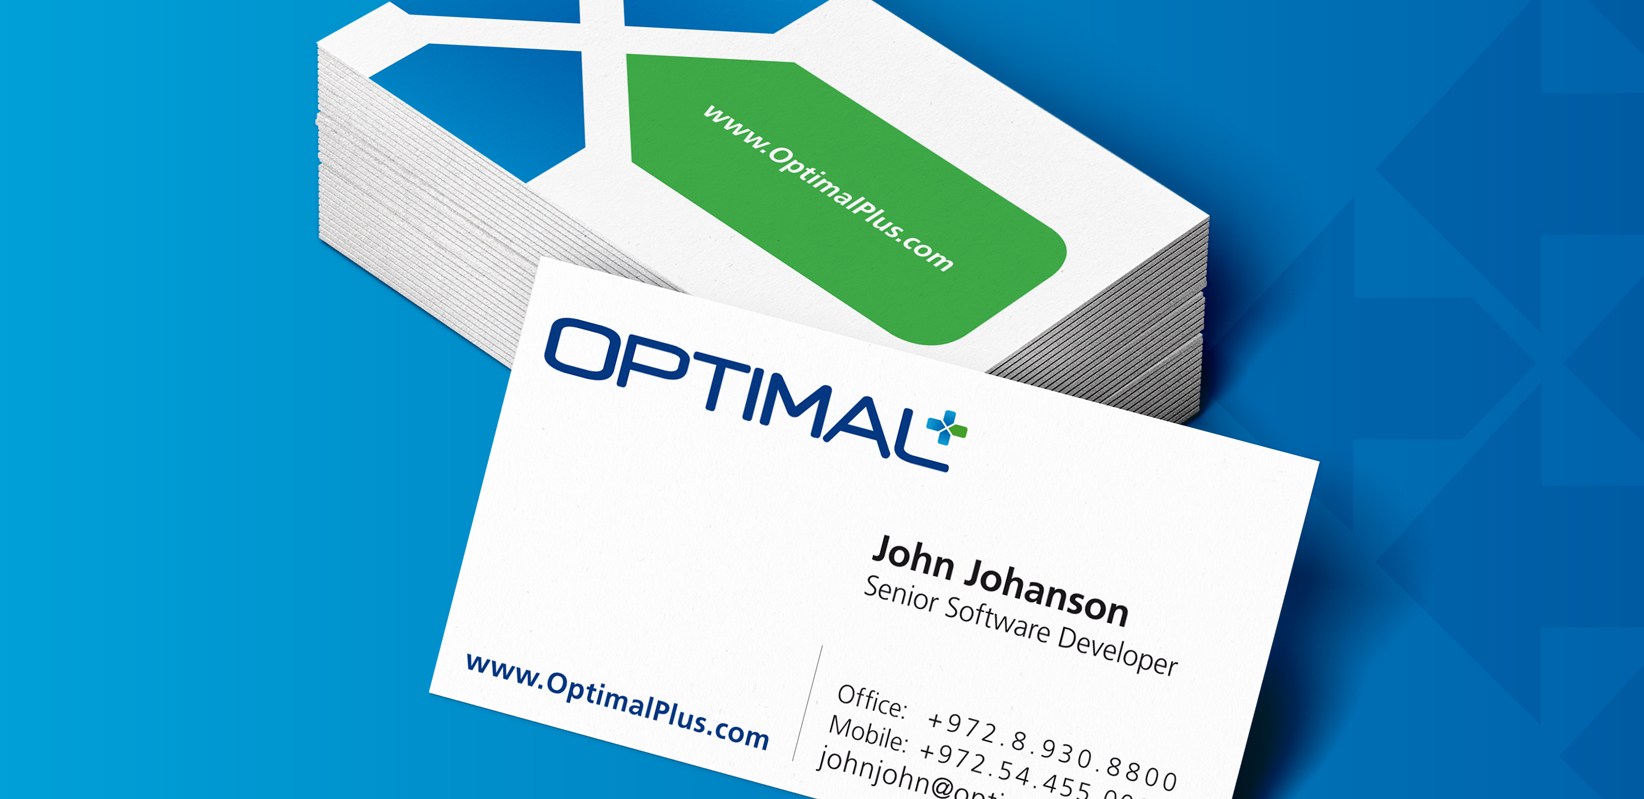 DI Branding & Design - customers - OPTIMAL PLUS